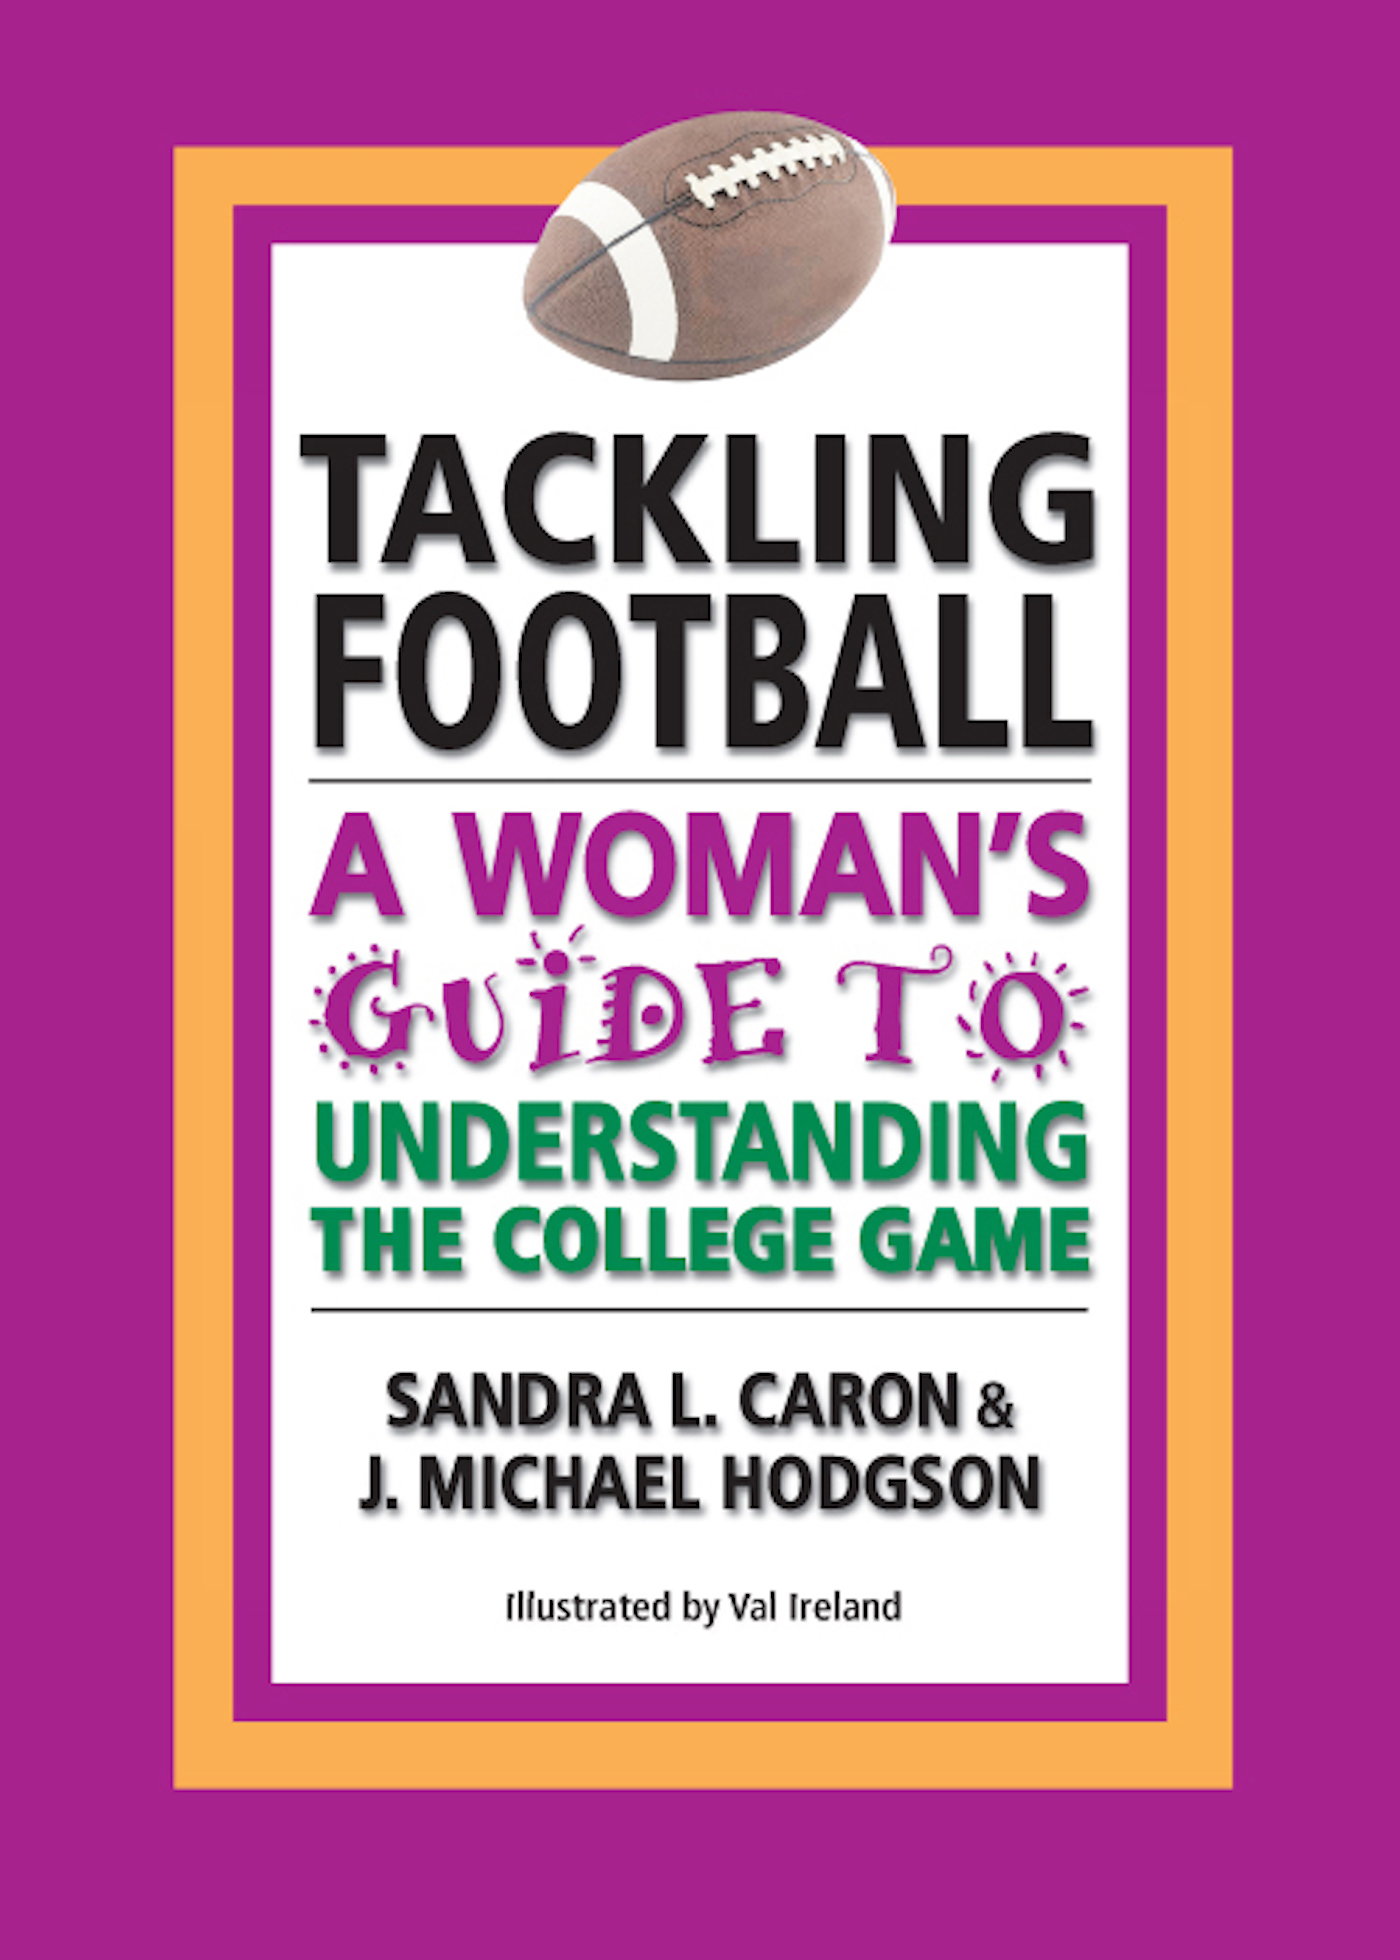 Tackling Football: A Woman's Guide to Understanding the College Game, an  Ebook by Sandra L Caron & J Michael Hodgson